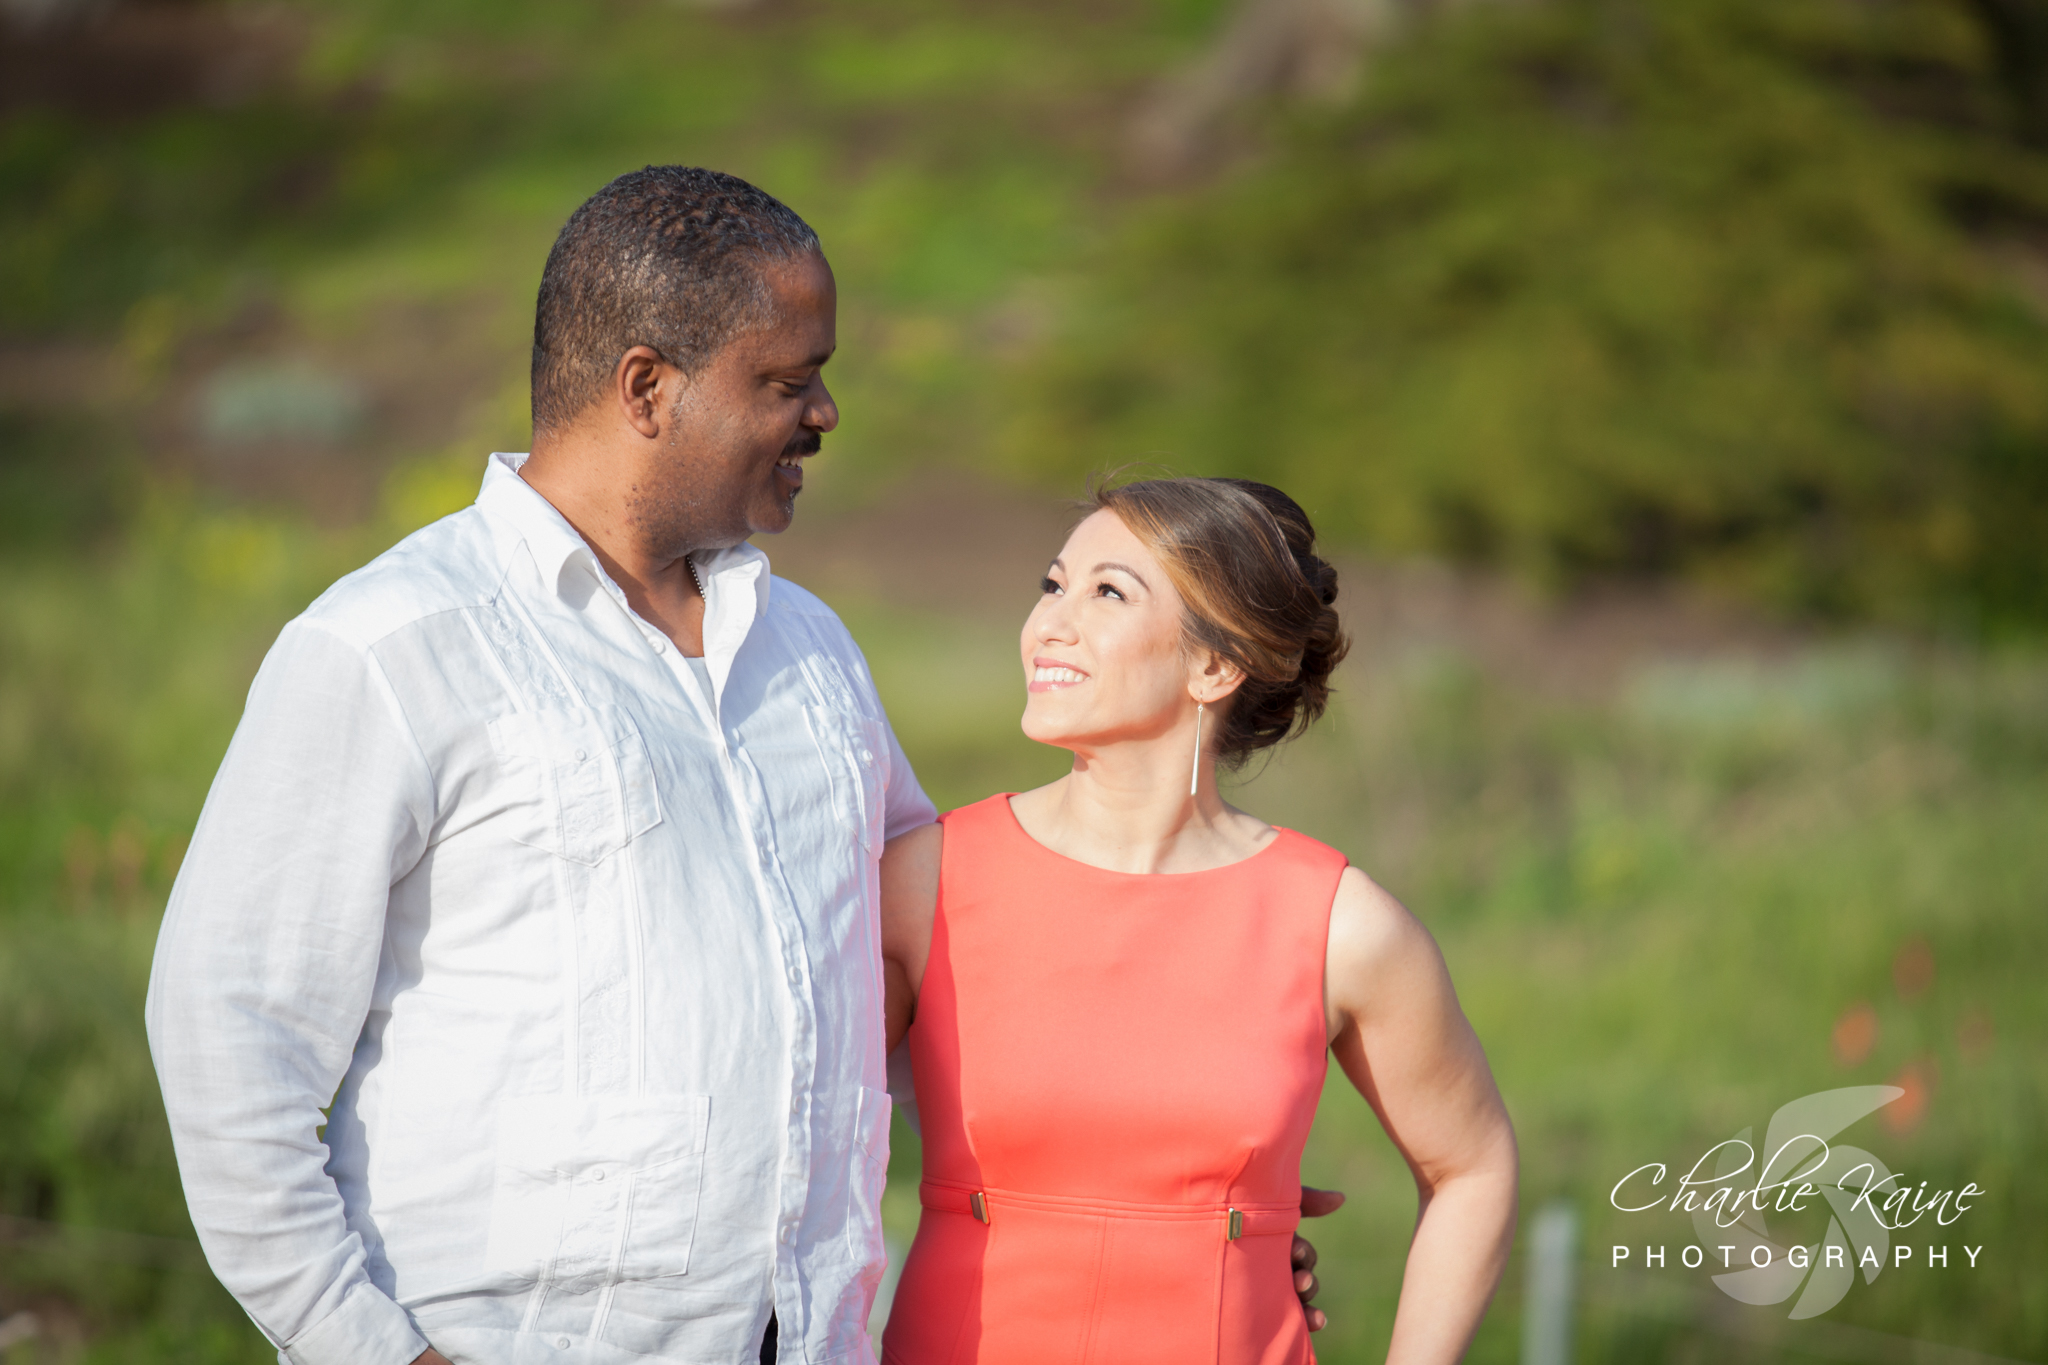 Wedding Photographer | Charlie Kaine Photography